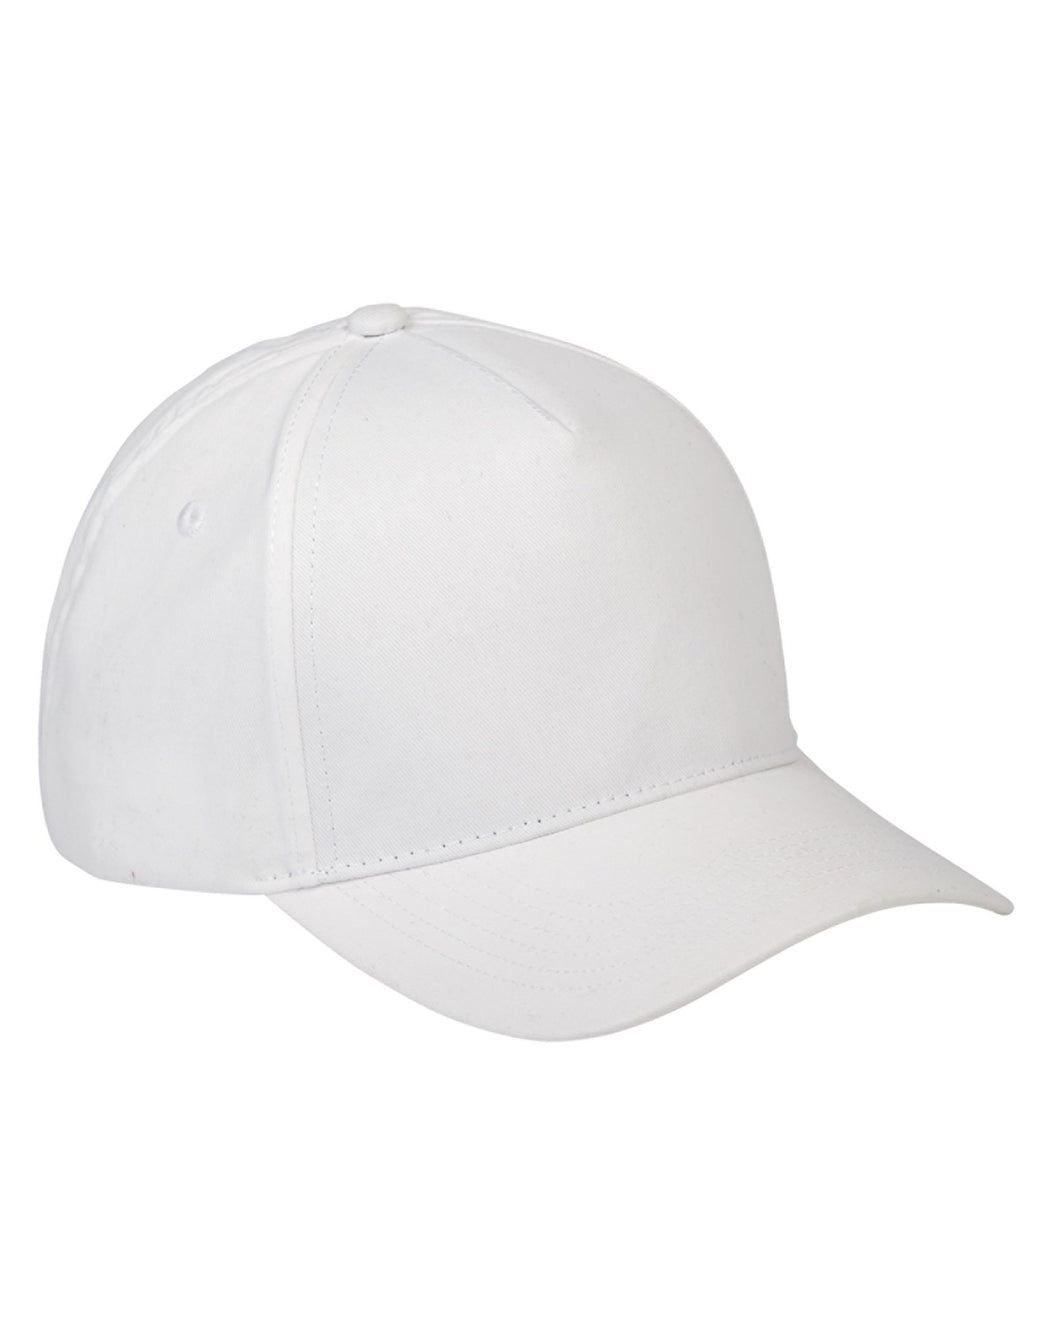 5-Panel Brushed Twill Cap